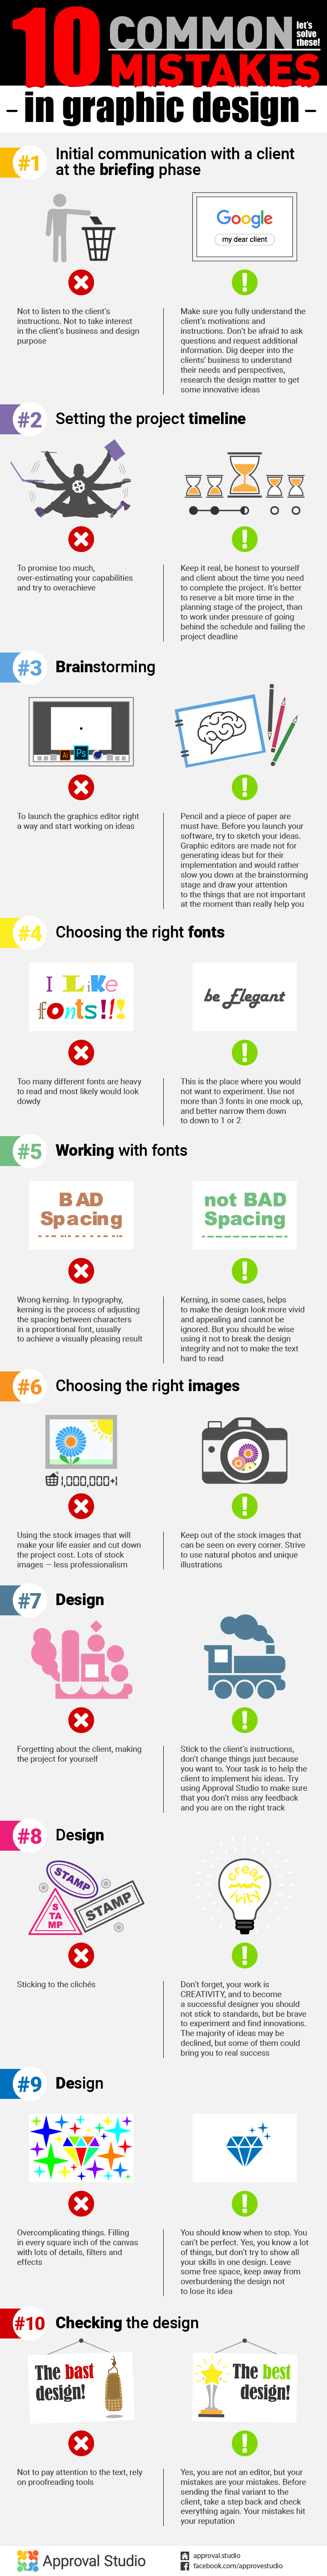 10 common mistakes in graphic design: - Initial communication with a client at the briefing phase; - Setting the project timeline; - Brainstorming; - Choosing the right fonts; - Working with fonts; - Choosing the right images; - Design; - Design; - Design; - Checking the design;